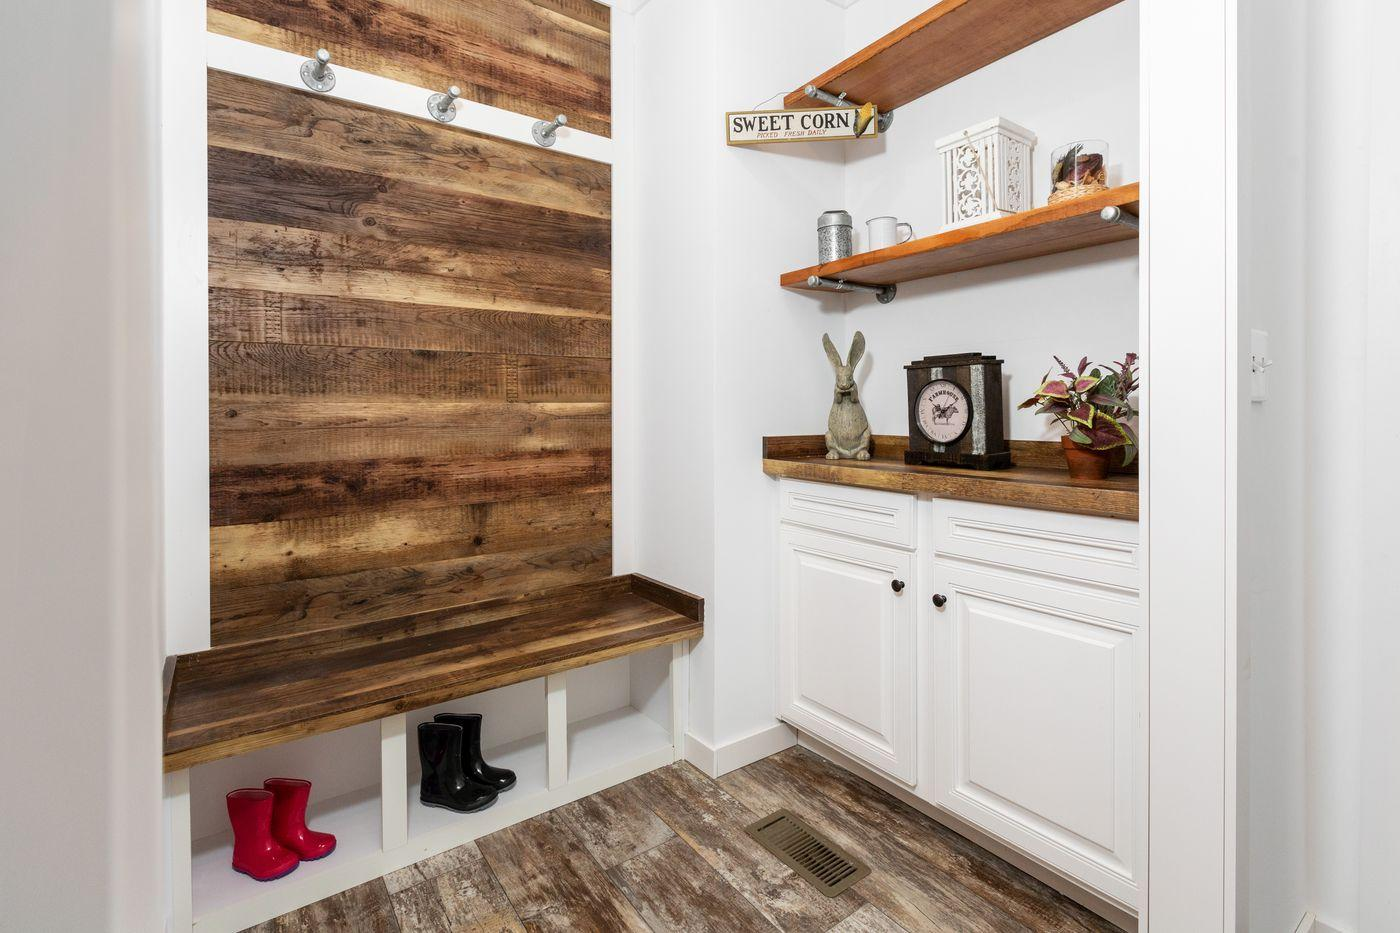 The Lulabelle Mudroom